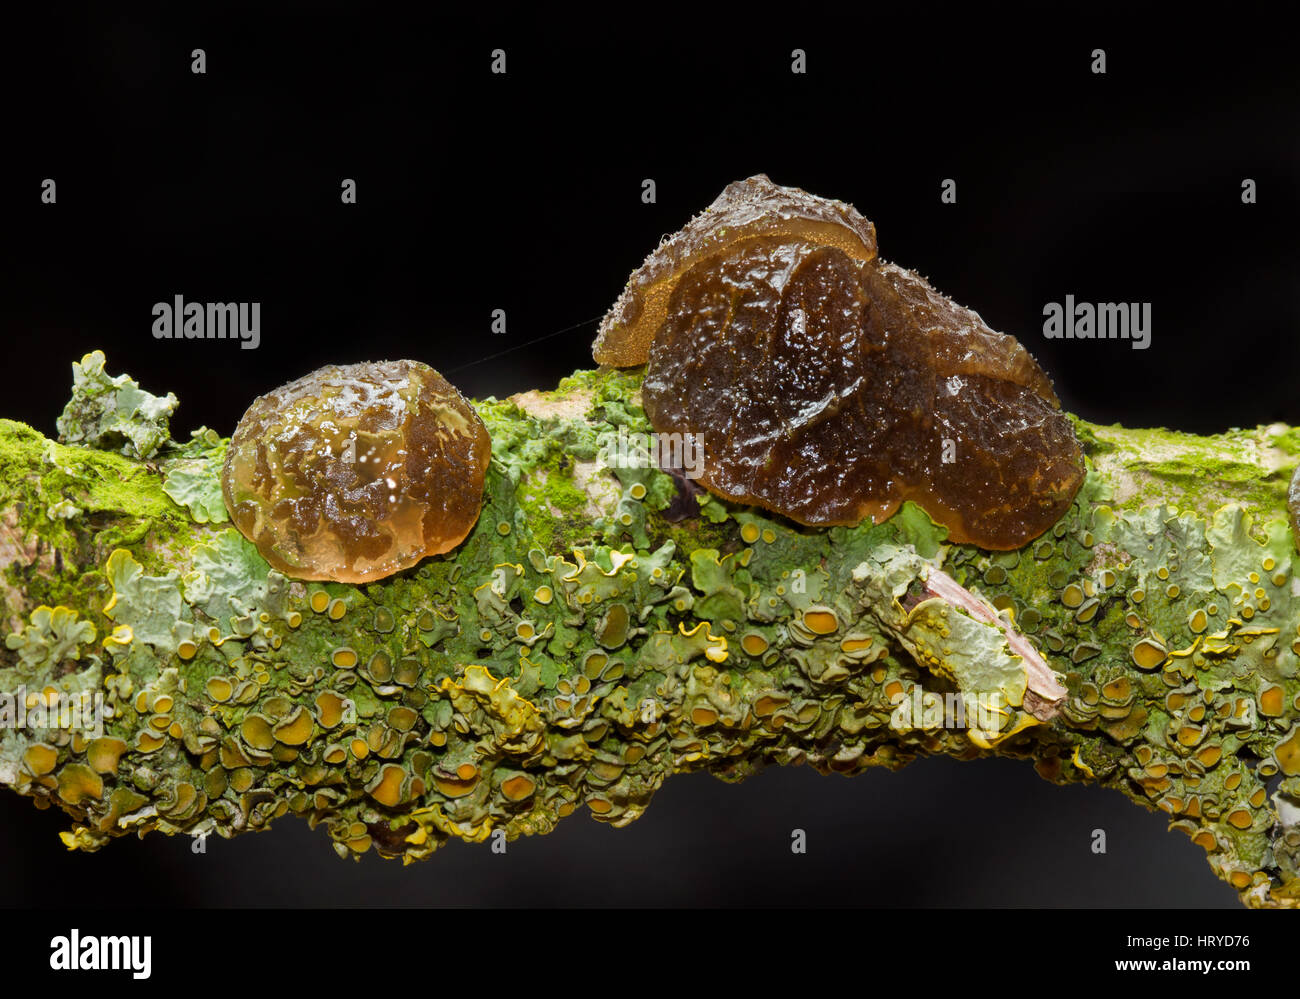 Rubbery-gelatinous, button shaped fruit bodies of Witches' butter and lichens on the rotting branch of an Oak - Stock Image